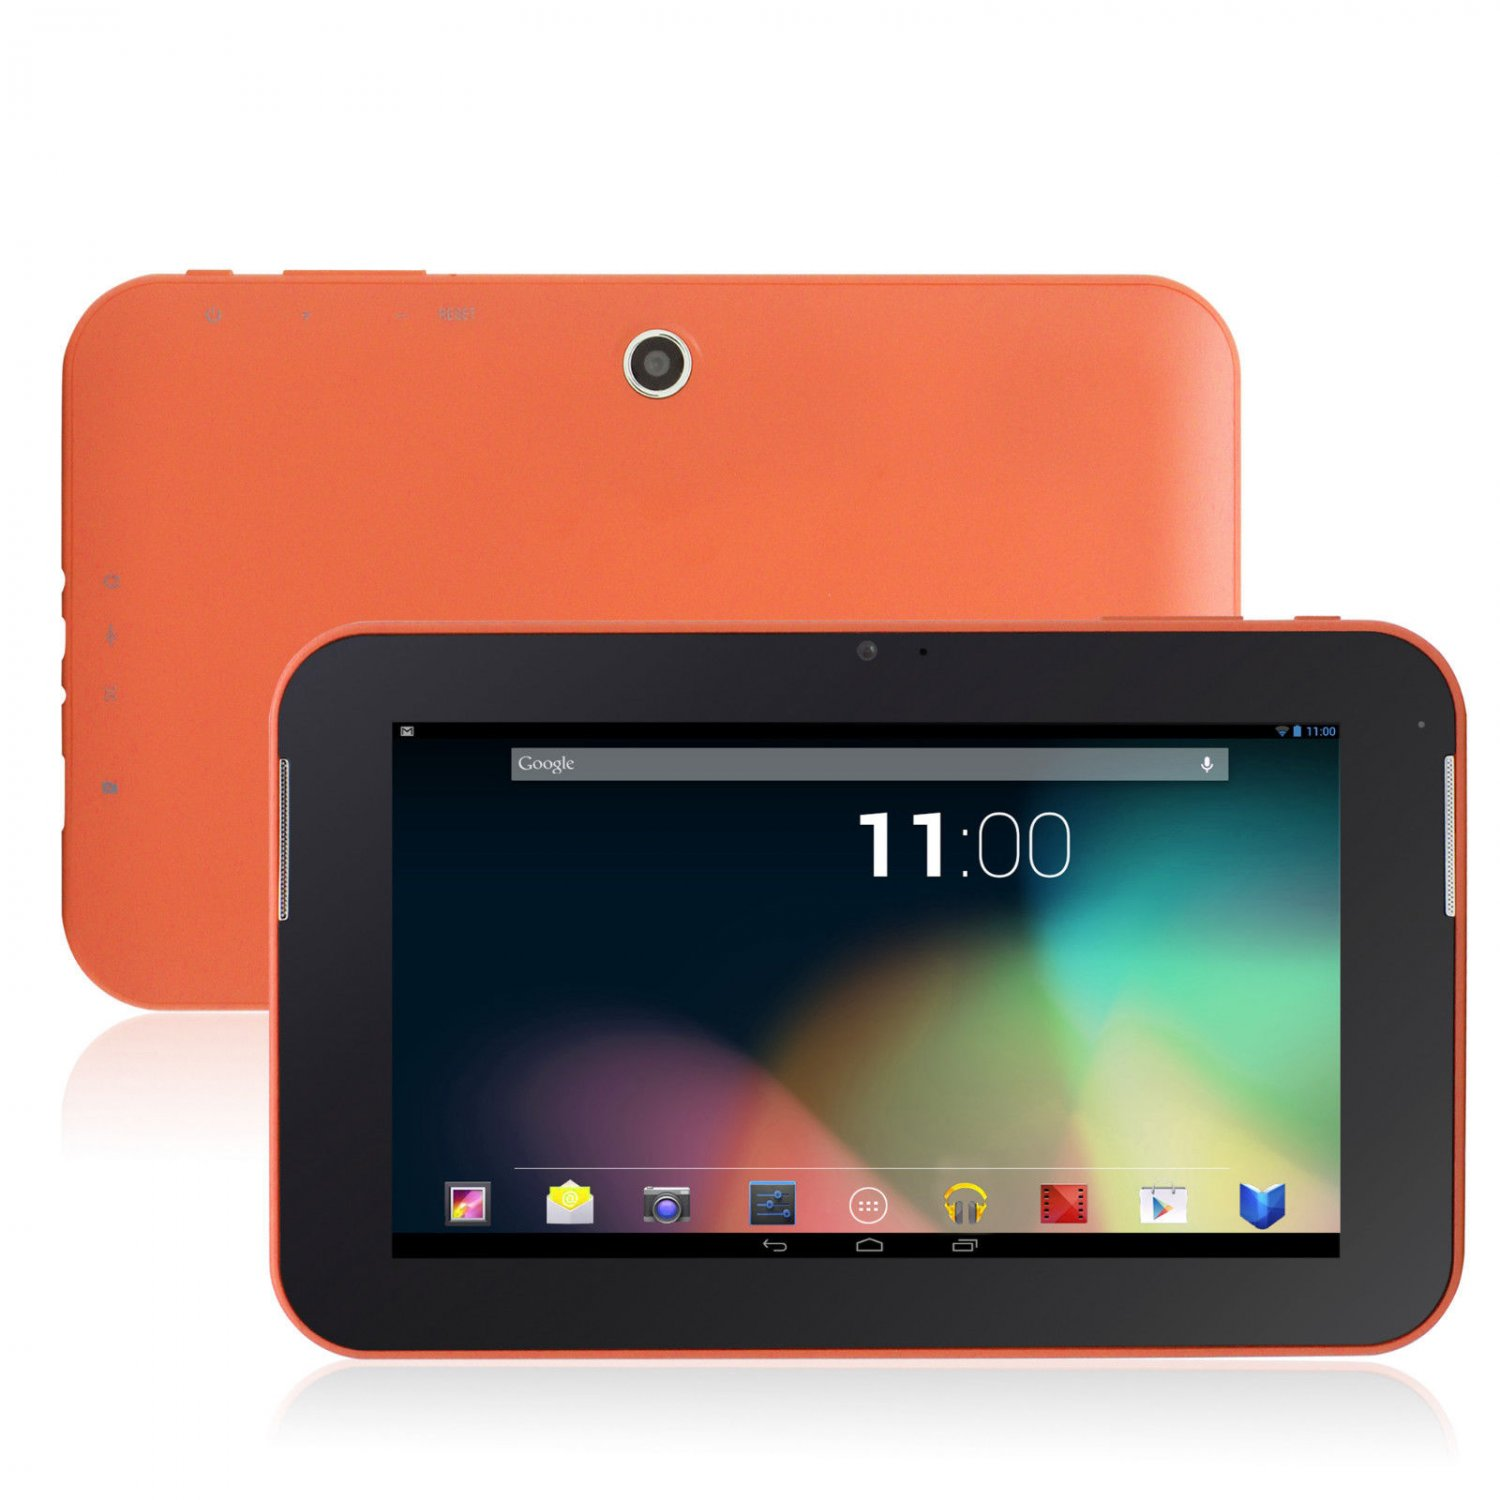 New Orange OEM Android Tablet PC With Dual Core Cortex A9